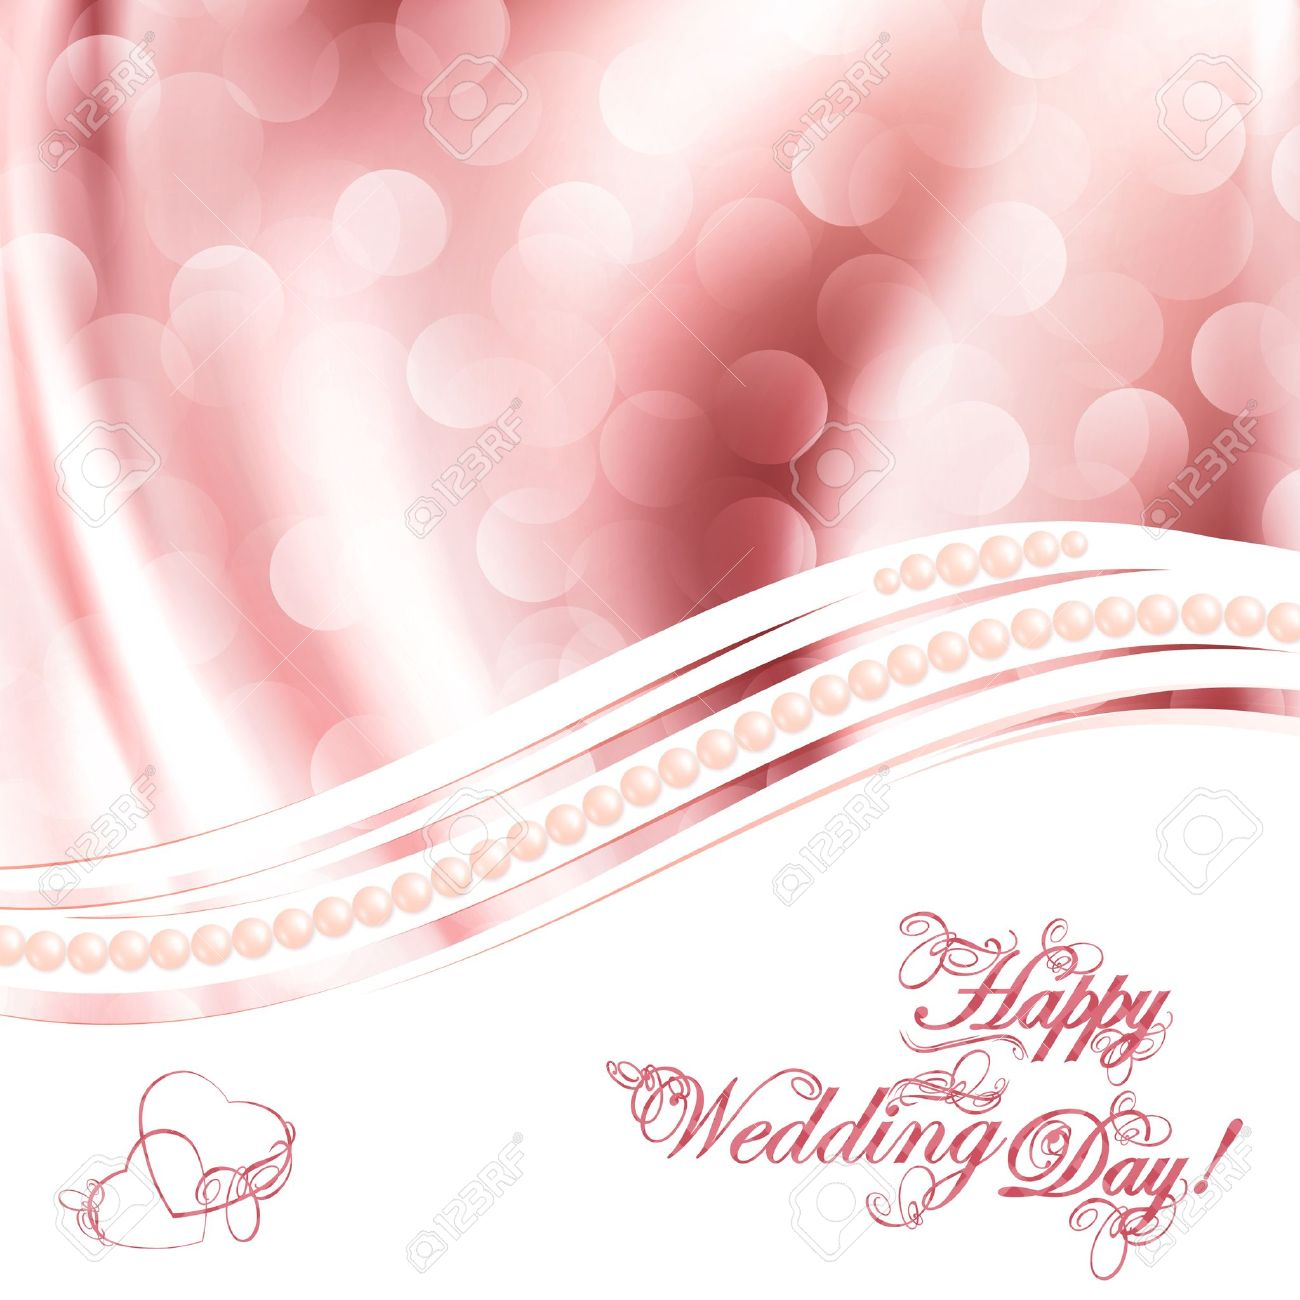 Wedding greetings over fabric drapery pink background Stock Vector - 12486527